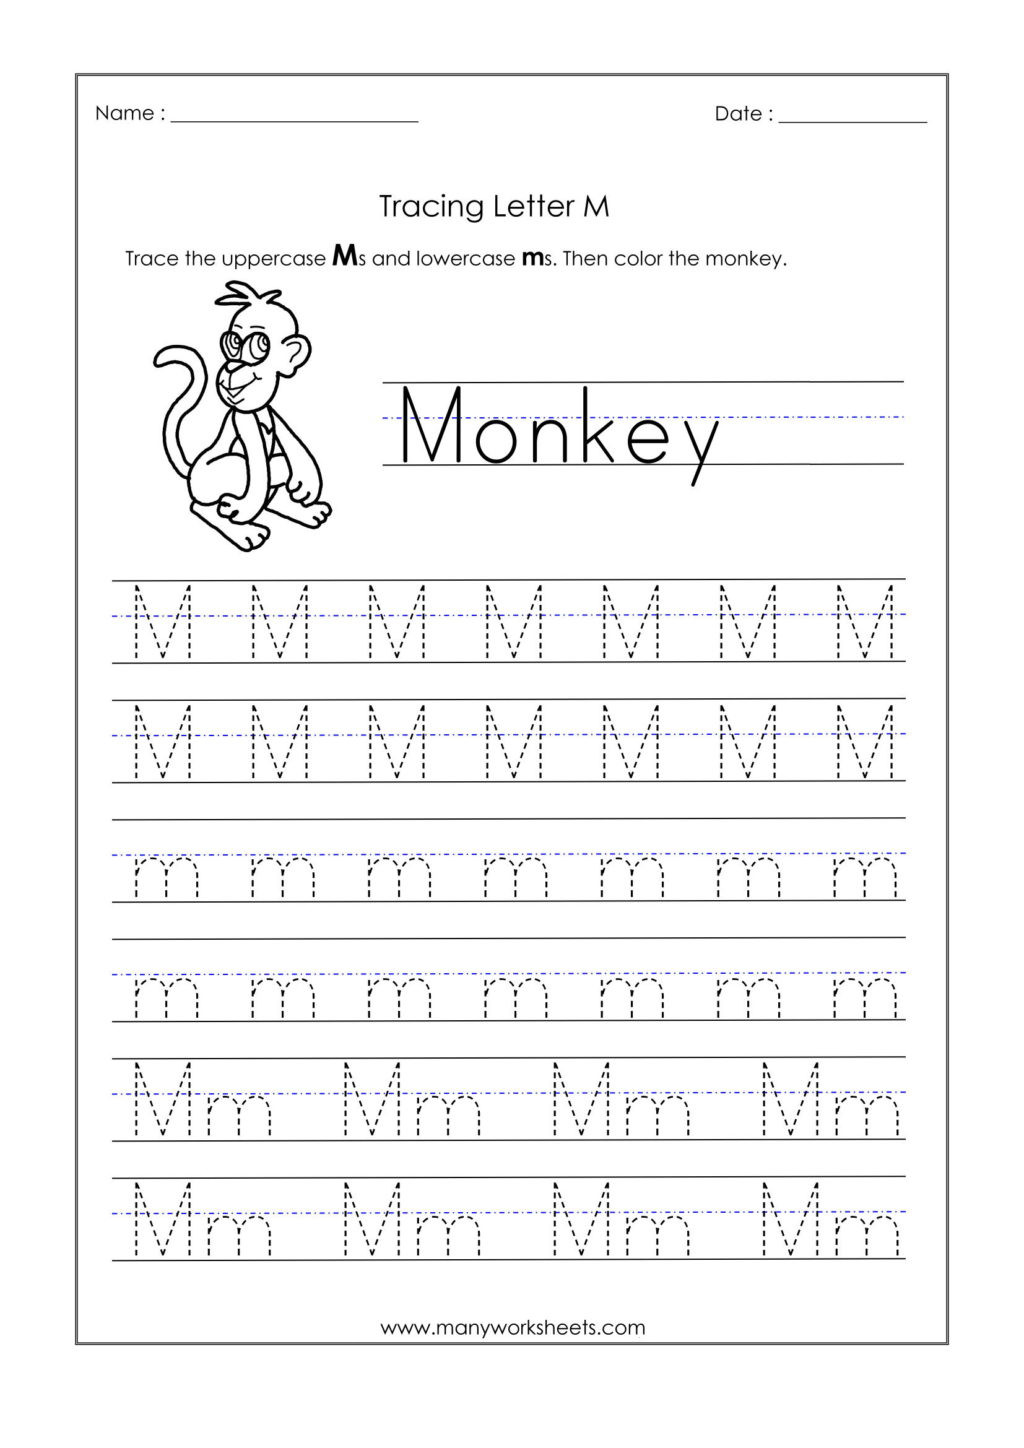 Free Printable Letter M Worksheets Worksheet Kindergarten Tracing Worksheets Handwriting